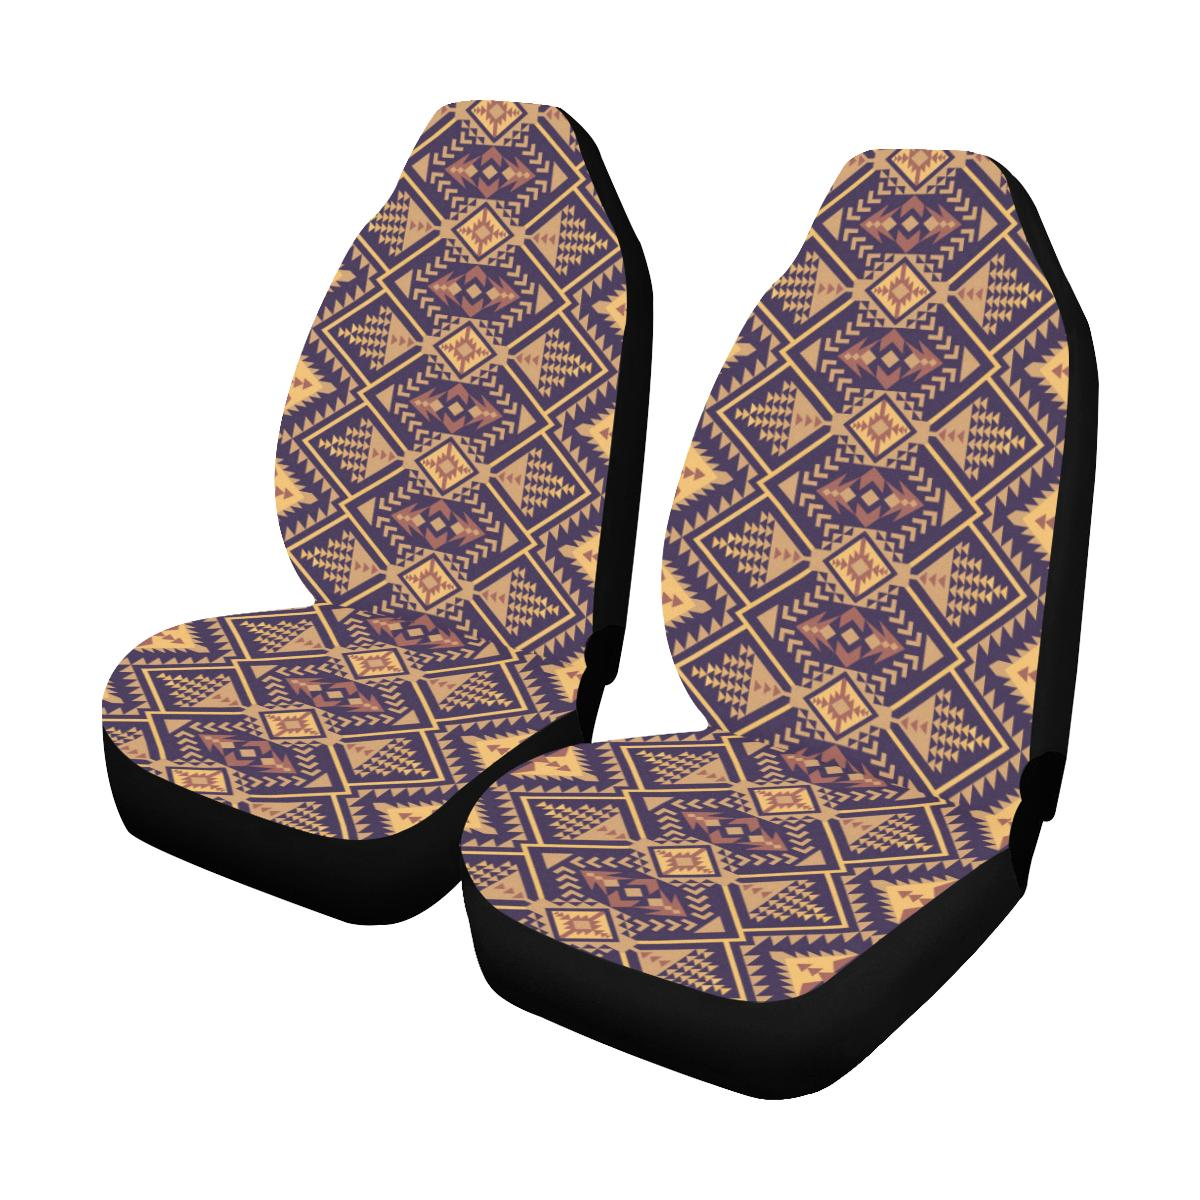 Aztec Pattern Print Design 09 Car Seat Covers (Set of 2)-JORJUNE.COM